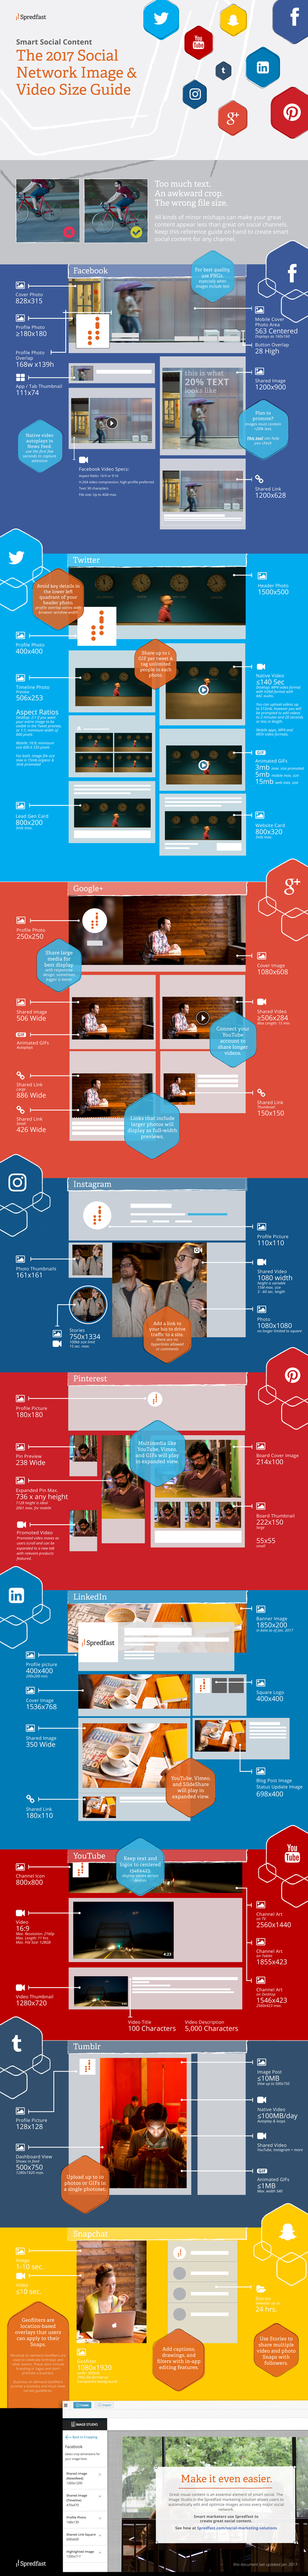 The 2017 Social Network Image & Video Size Guide